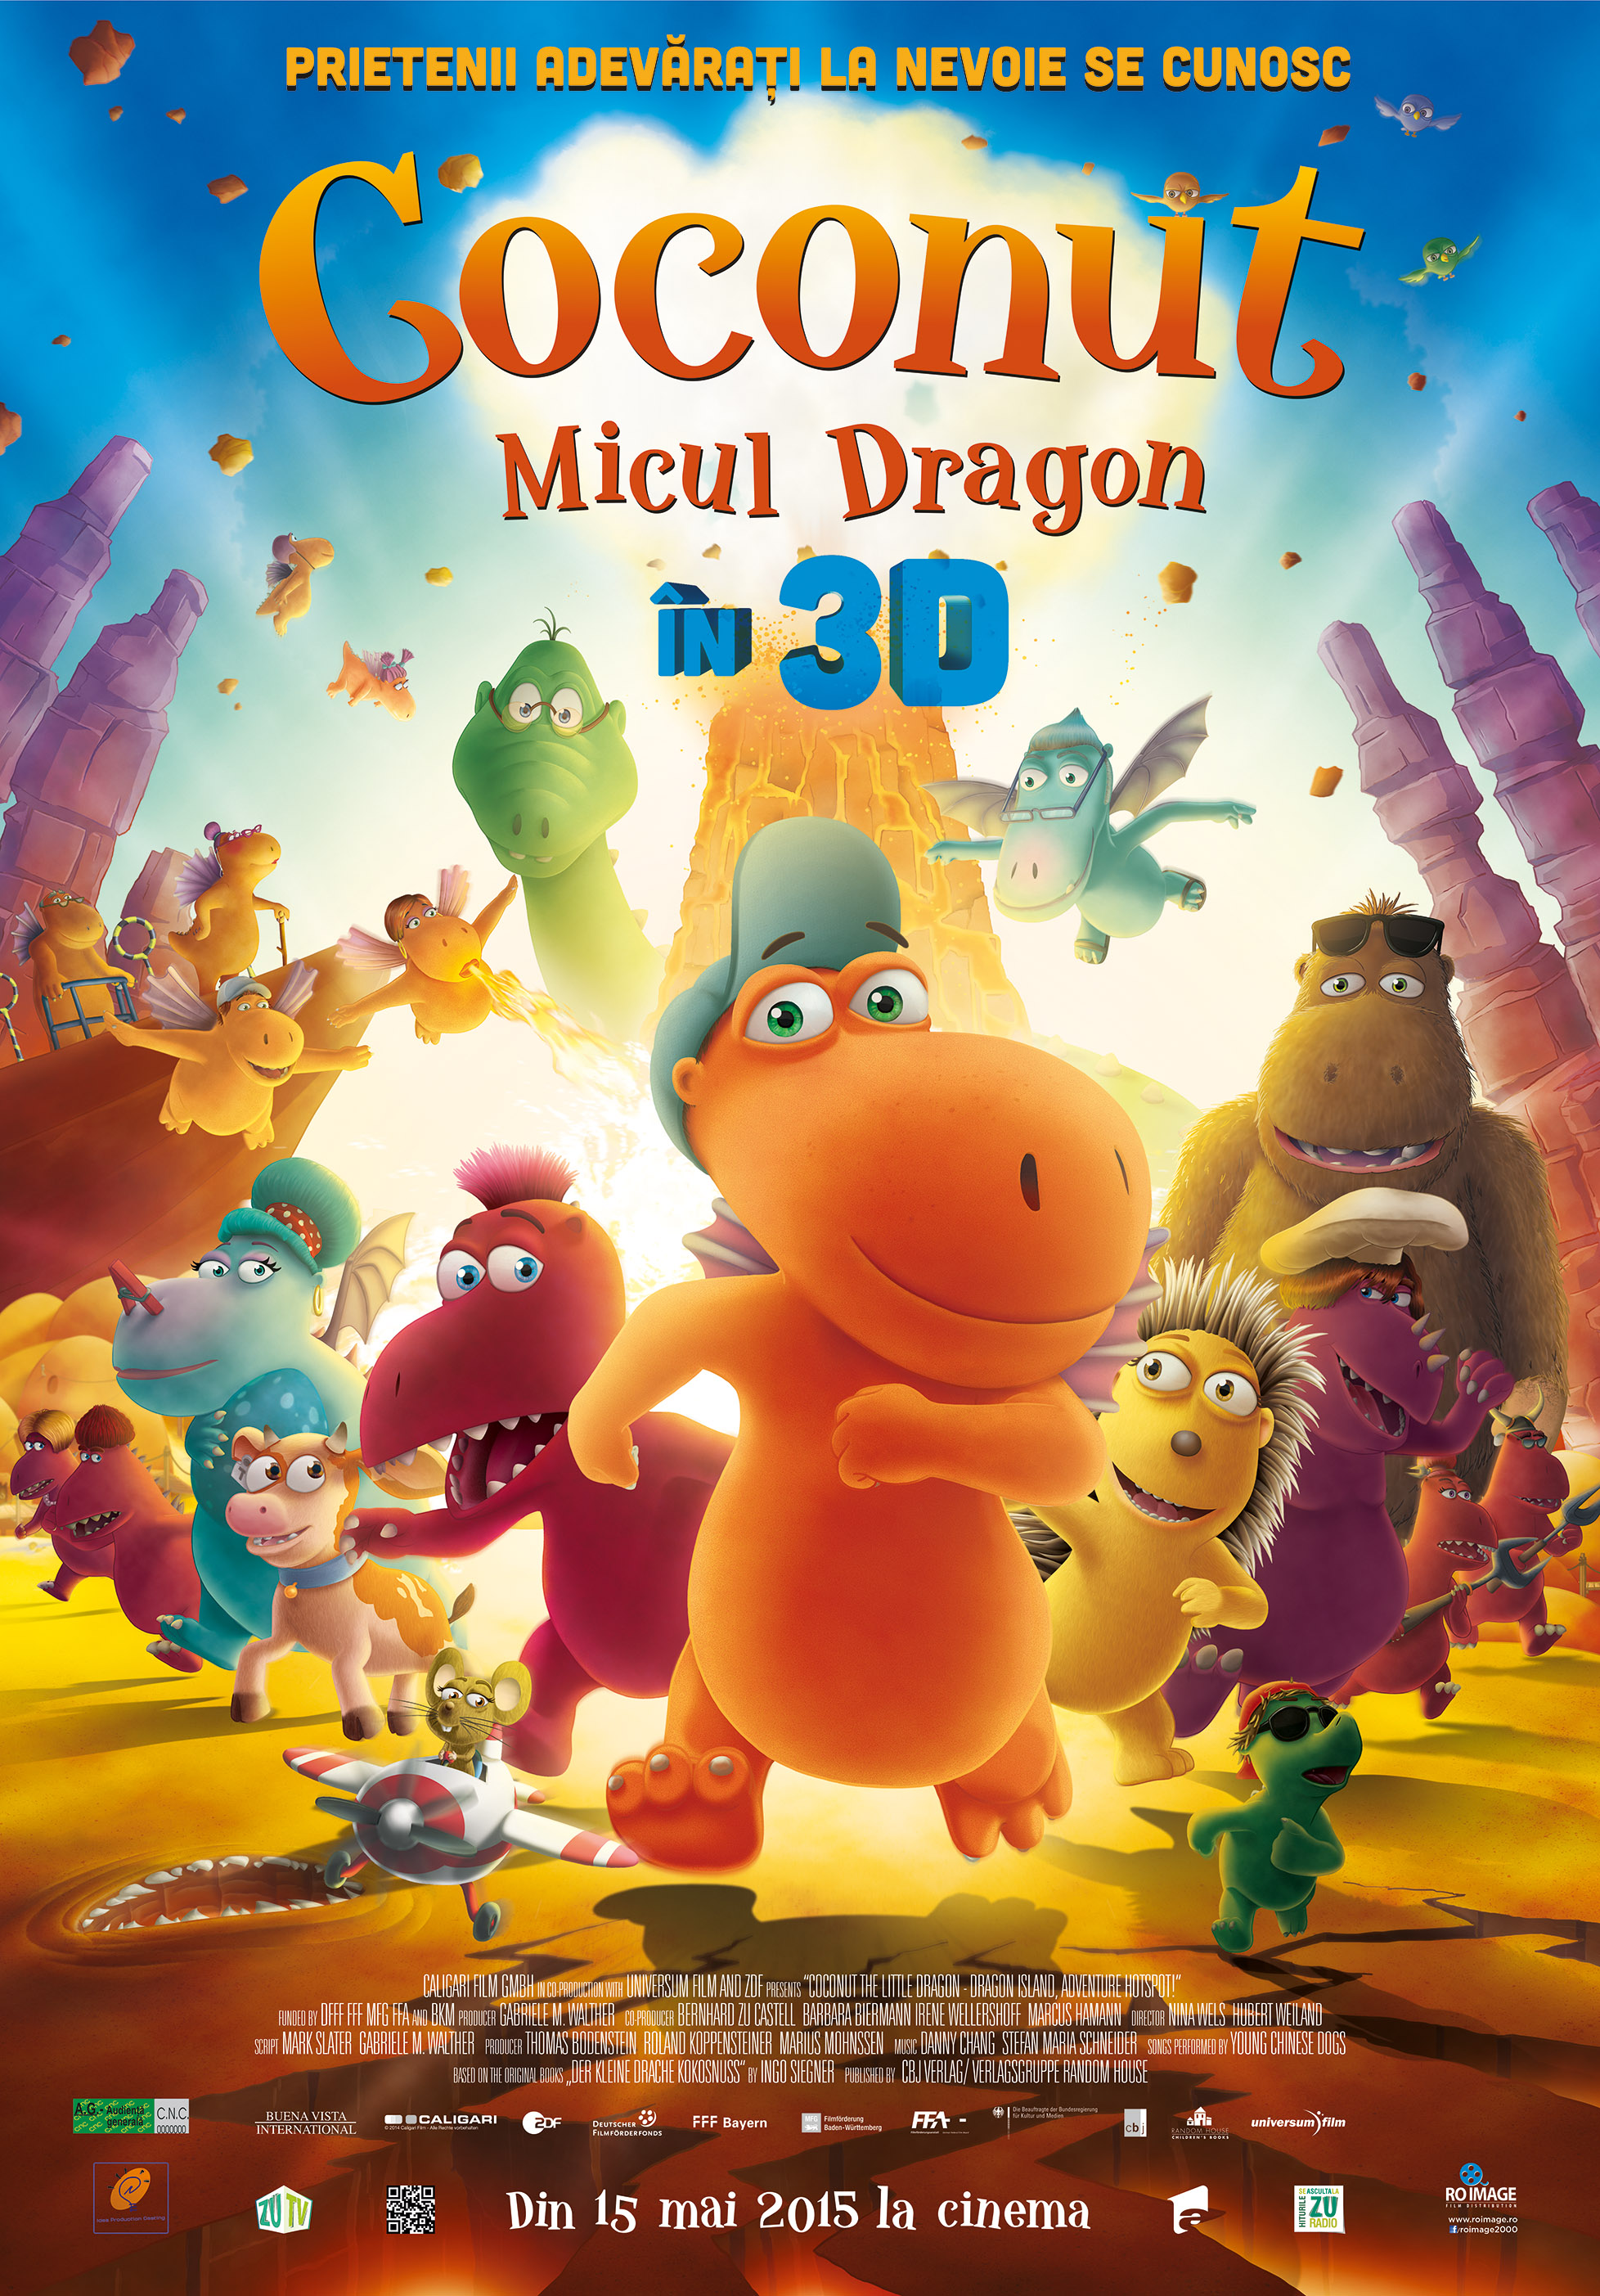 Coconut – Micul Dragon – 3D Dublat / Coconut – The Little Dragon - 3D Dubbed (Premiera)